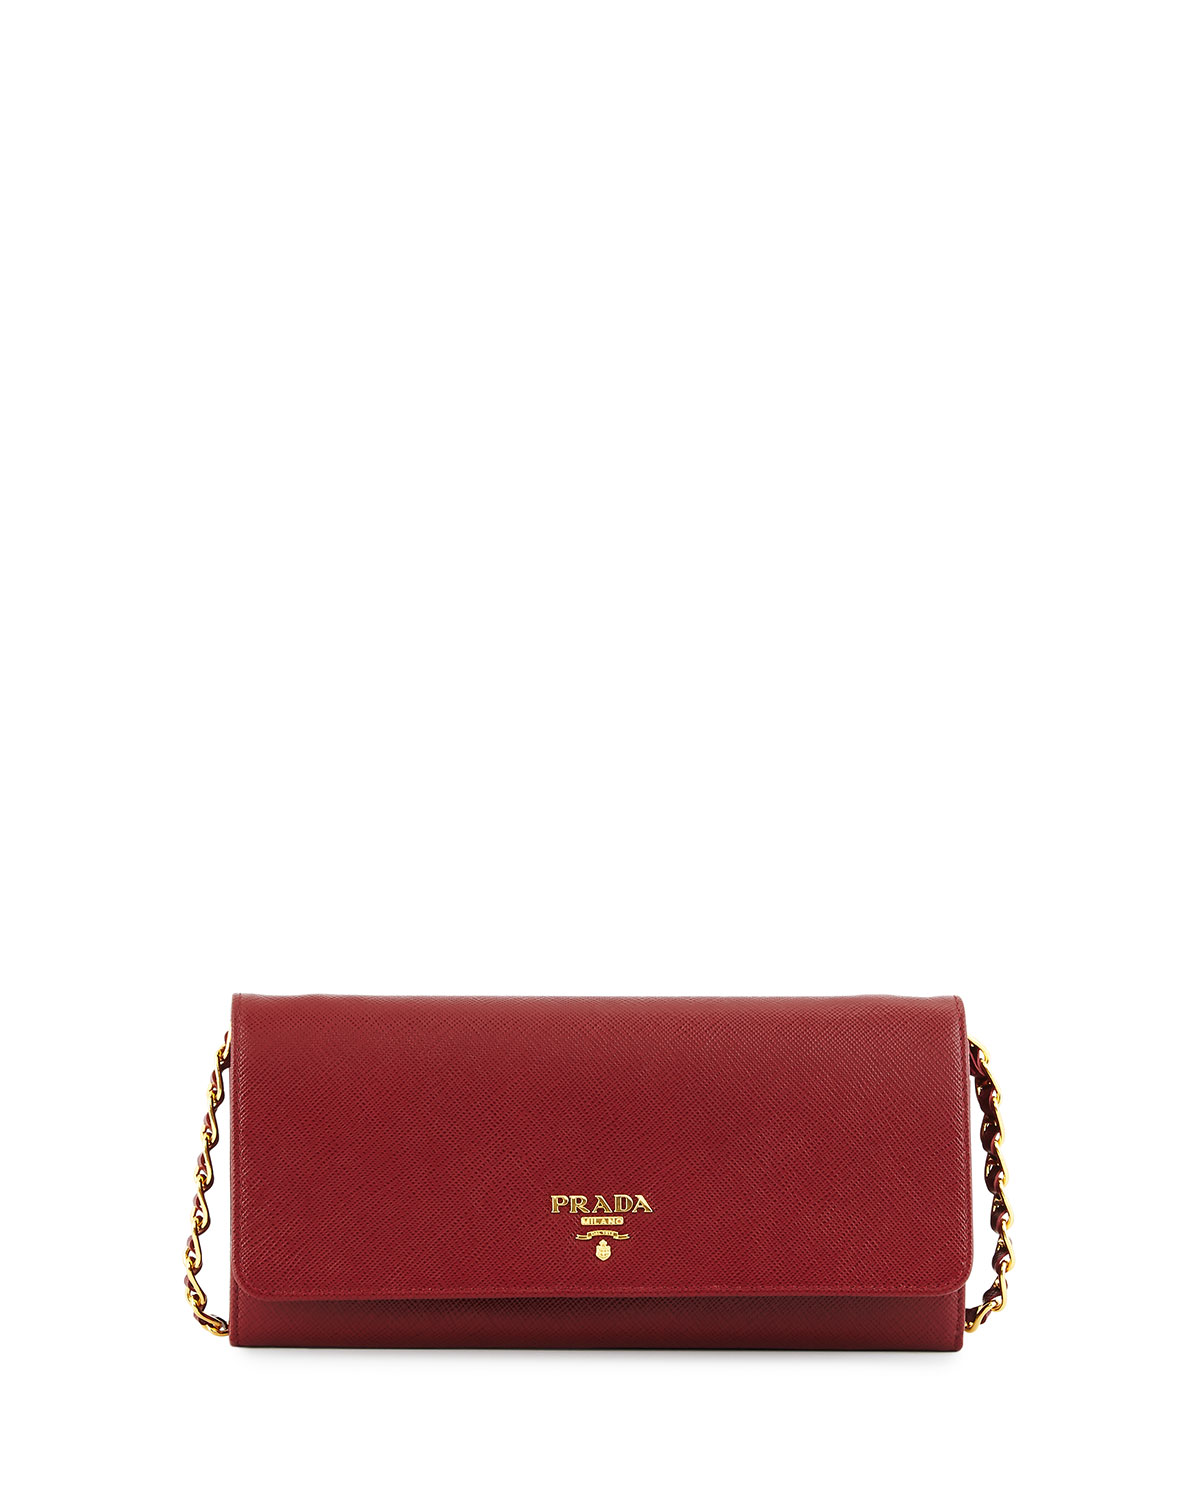 Prada Saffiano Leather Wallet-on-Chain, Red, Red Pattern